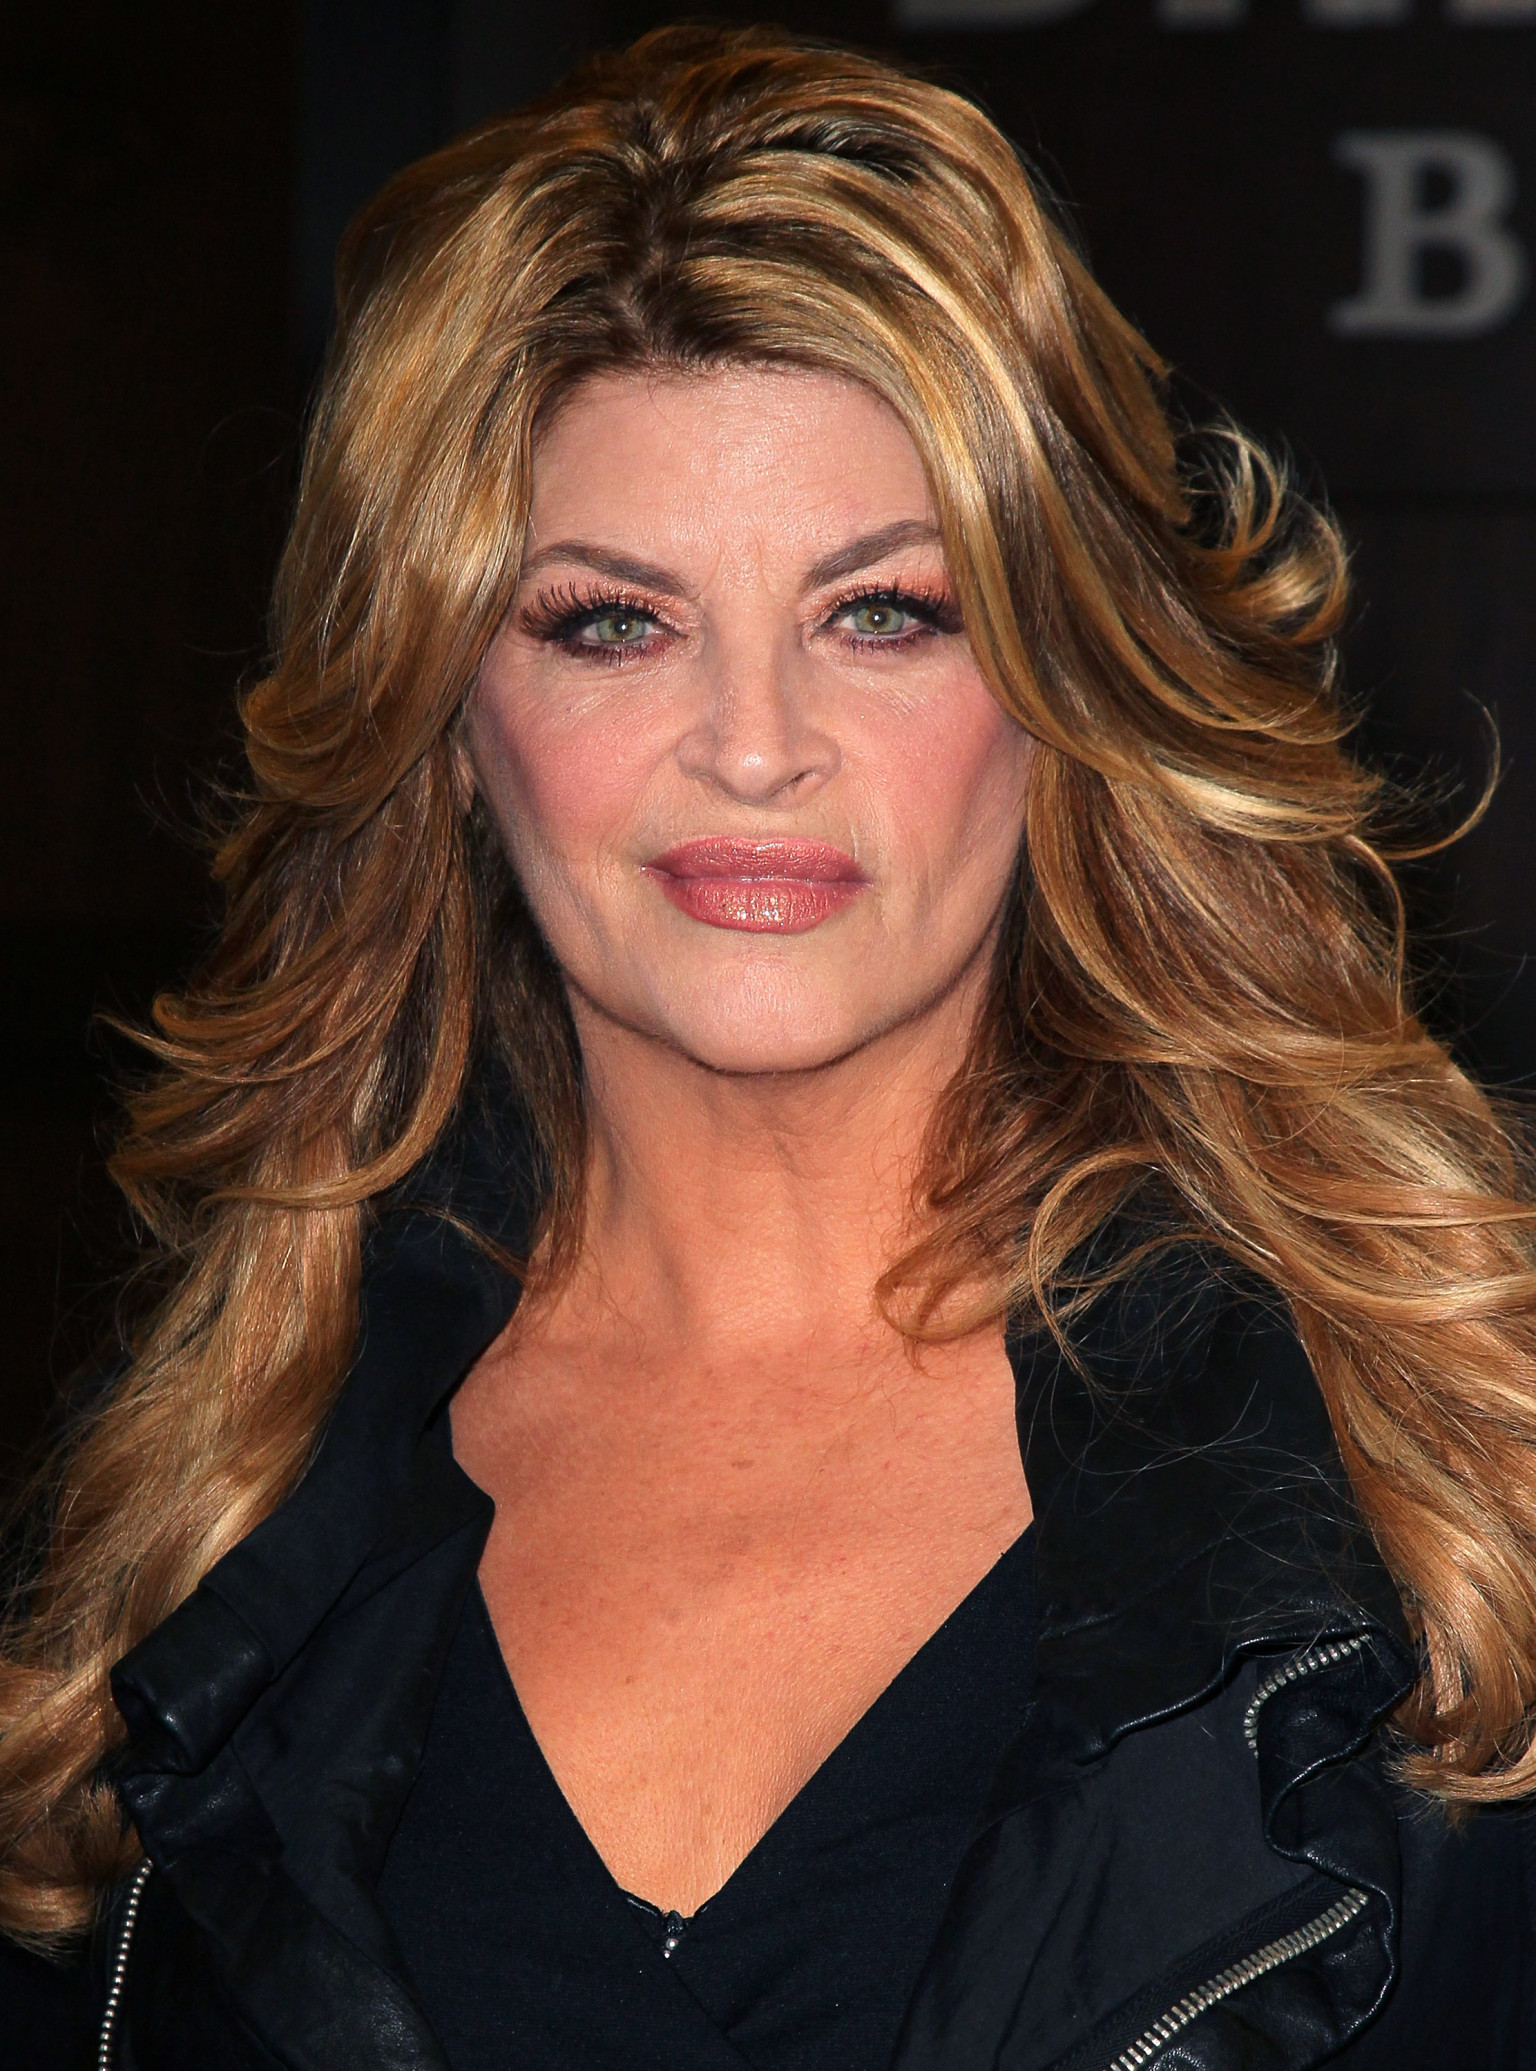 The 66-year old daughter of father Robert Deal Alley and mother Lillian Mickie, 171 cm tall Kirstie Alley in 2017 photo